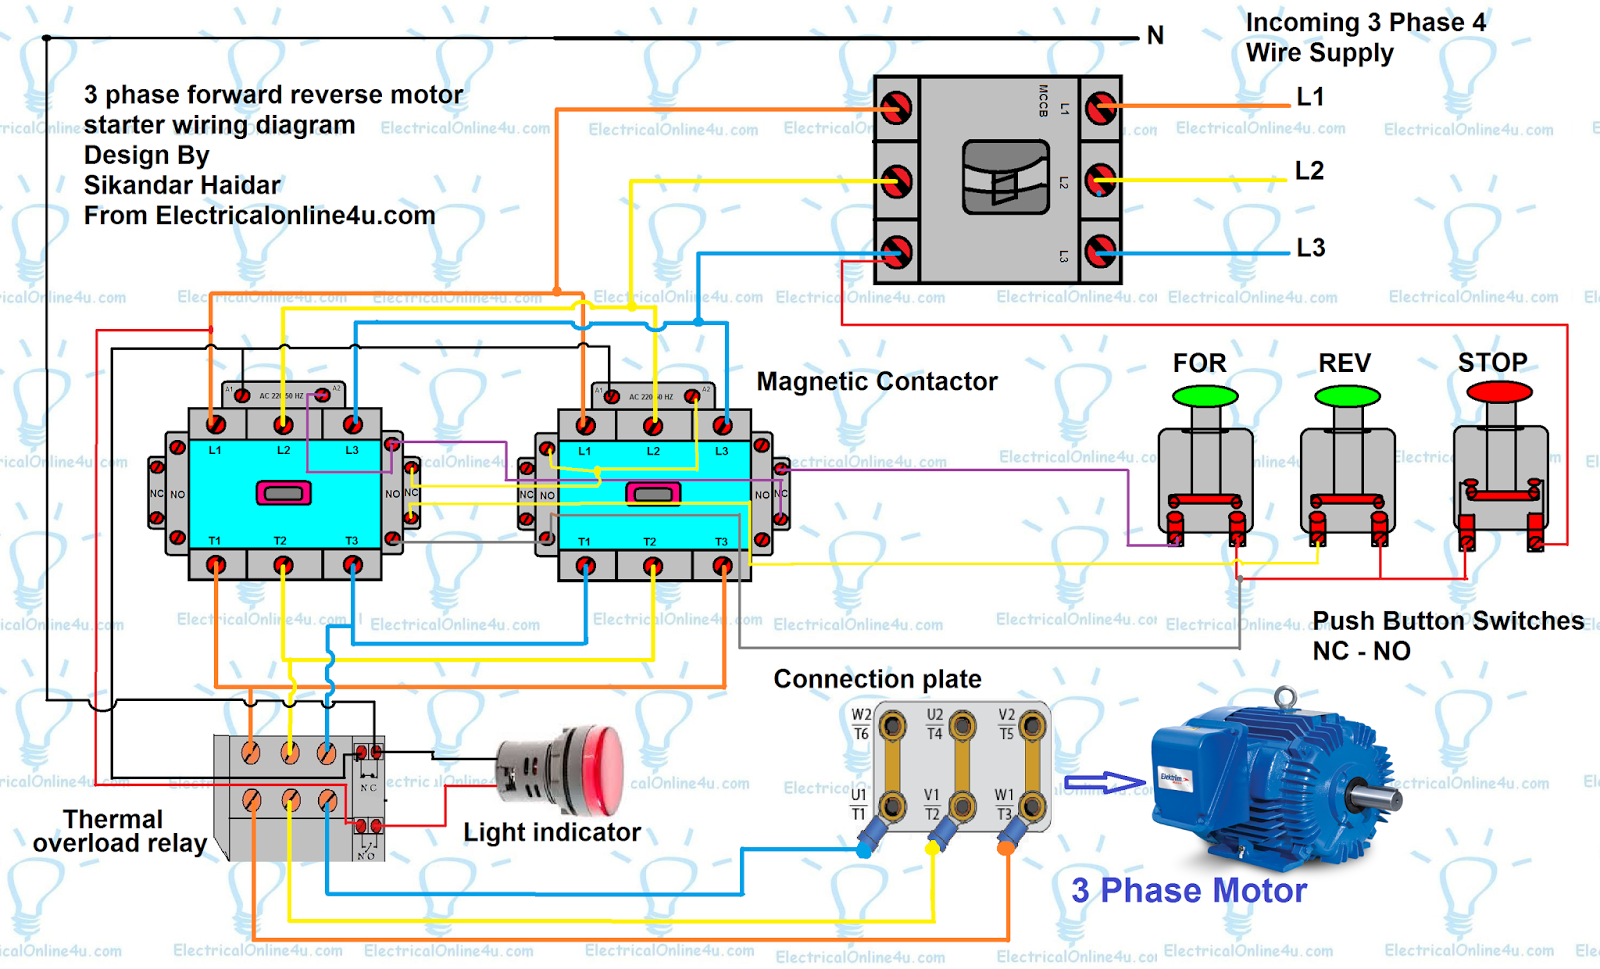 Forward Reverse Motor Control Diagram For 3 Phase Motor | Electrical Online  4u